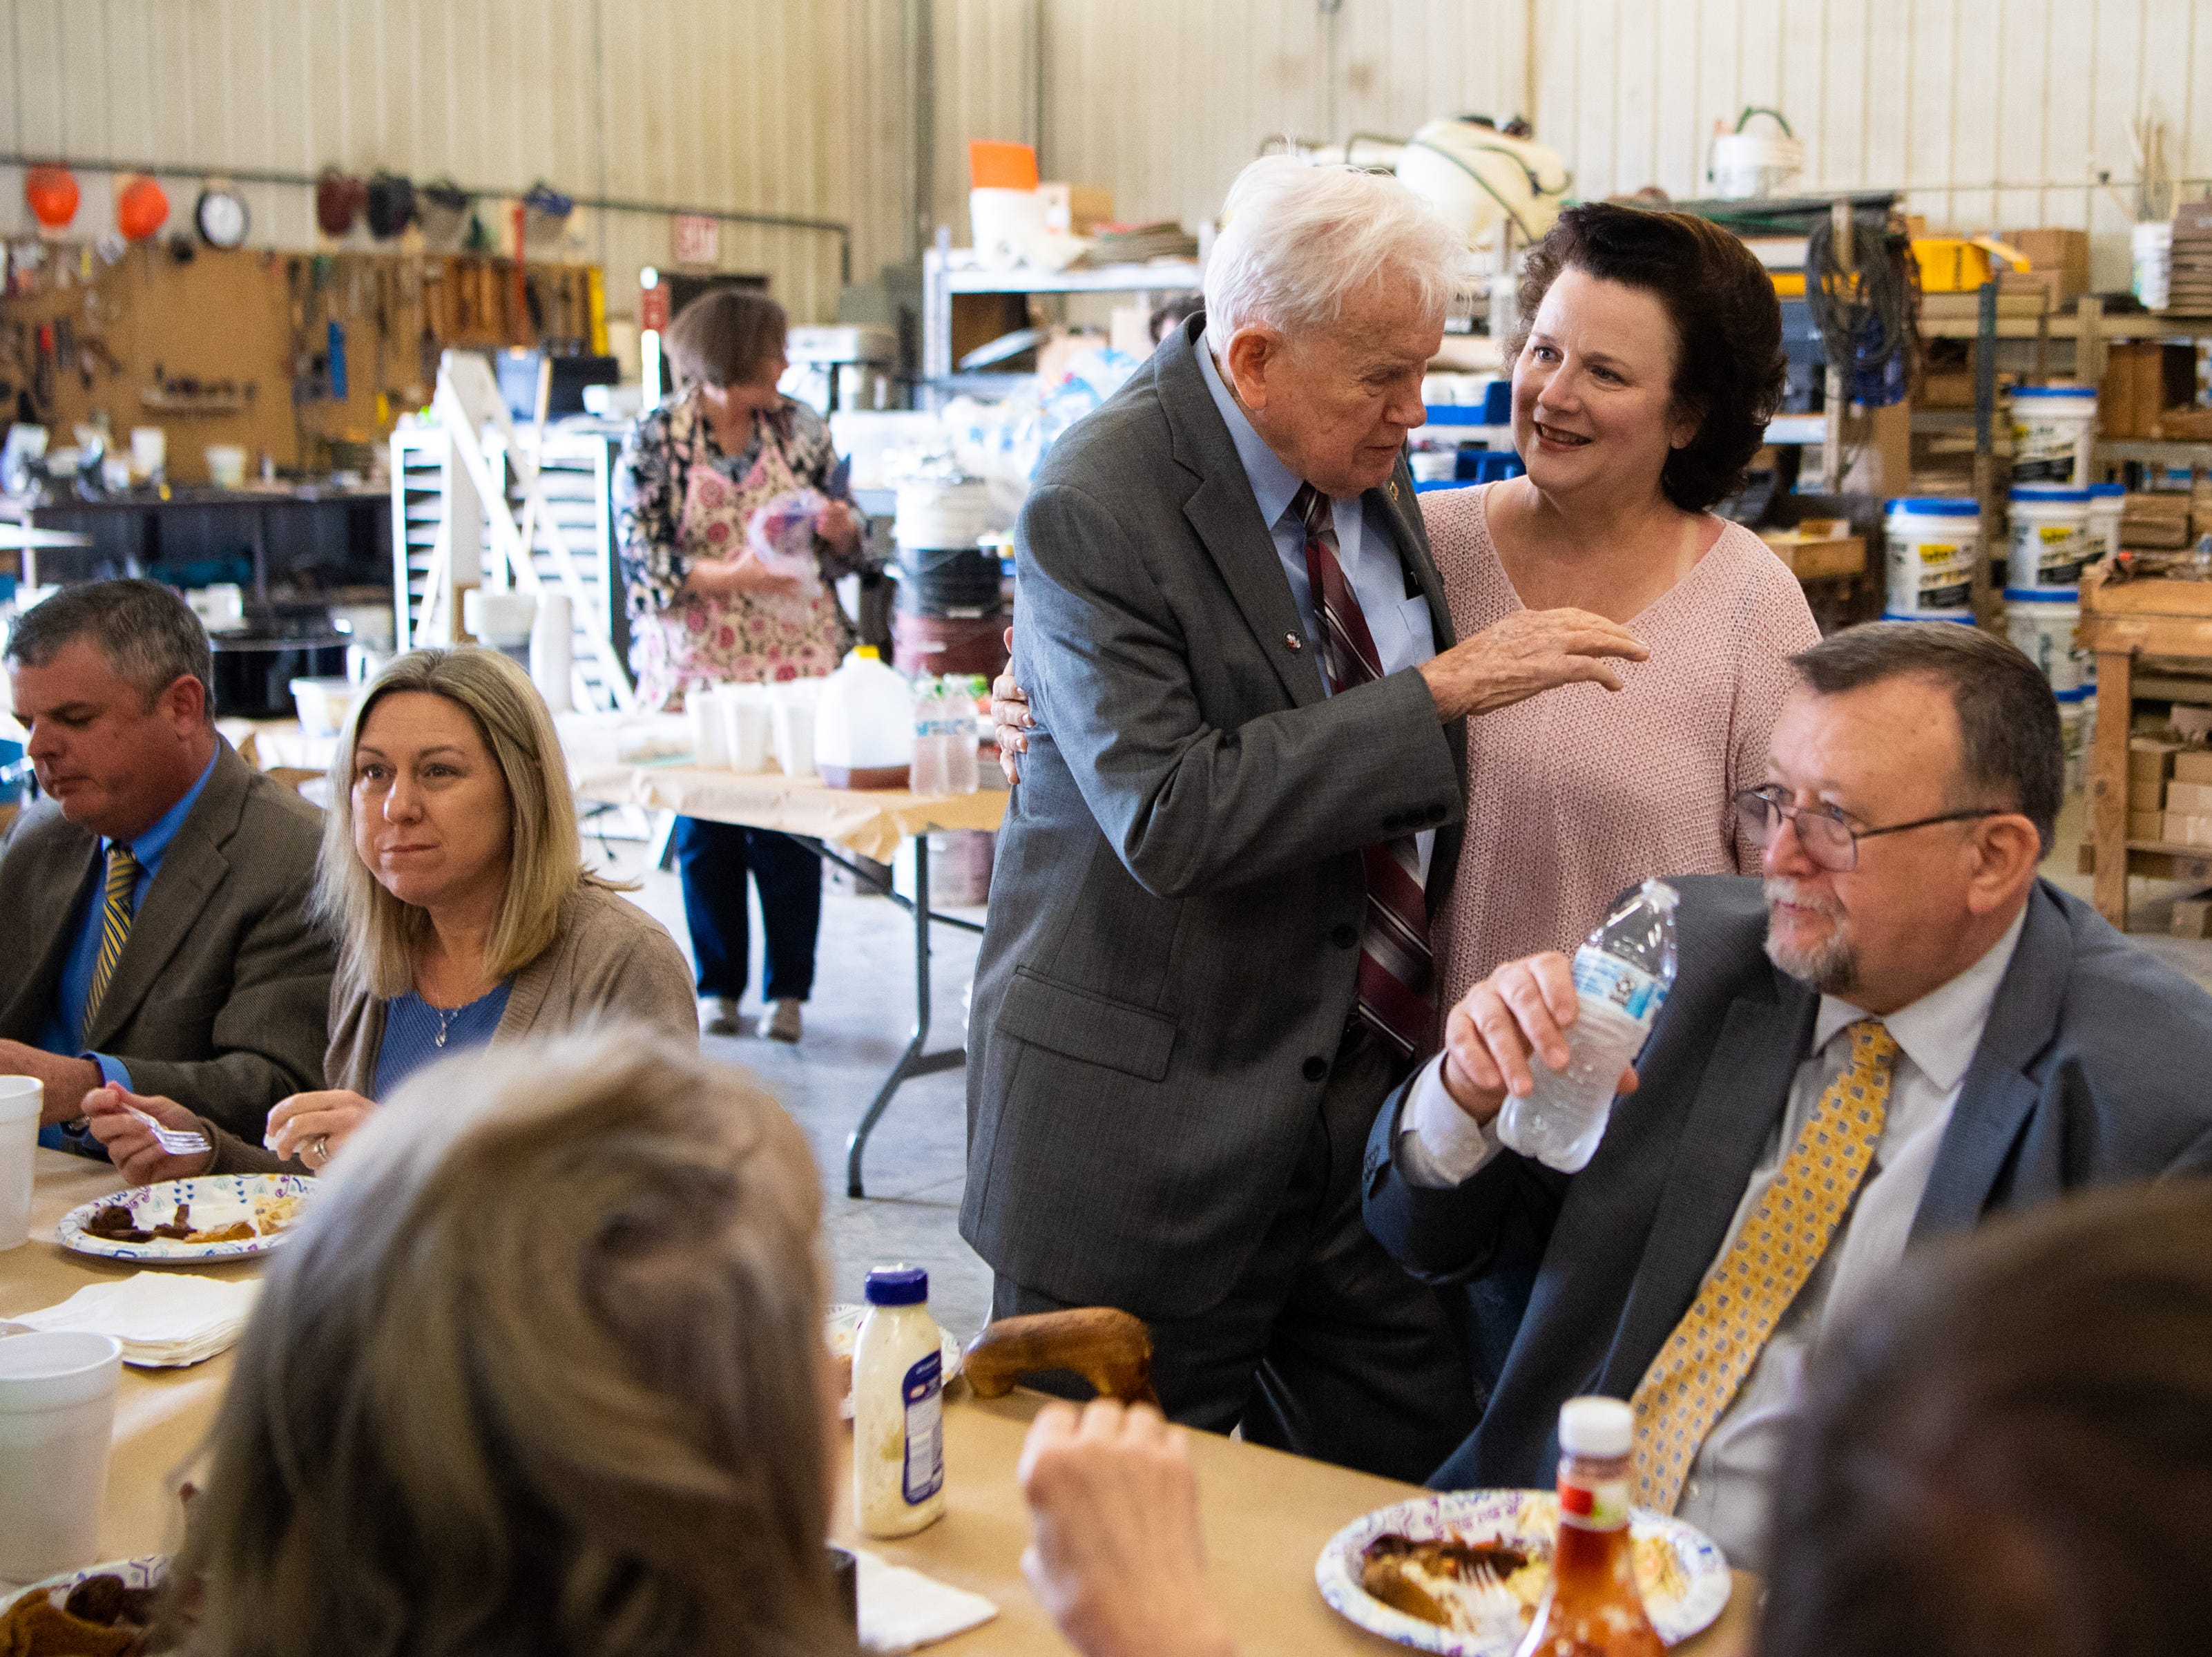 James L. Bass, 97, speaks to his daughter Jane Bass Turner at Smith Utility District Friday, March 29, 2019, in South Carthage, Tenn. Bass served as their council for 52 years and was invited for lunch to celebrate their new building. Bass still works five days a week at the family law firm after starting there 70 years ago. Bass served in World War II, went back to school to pursue a law degree and graduated Vanderbilt University School of Law in 1949.